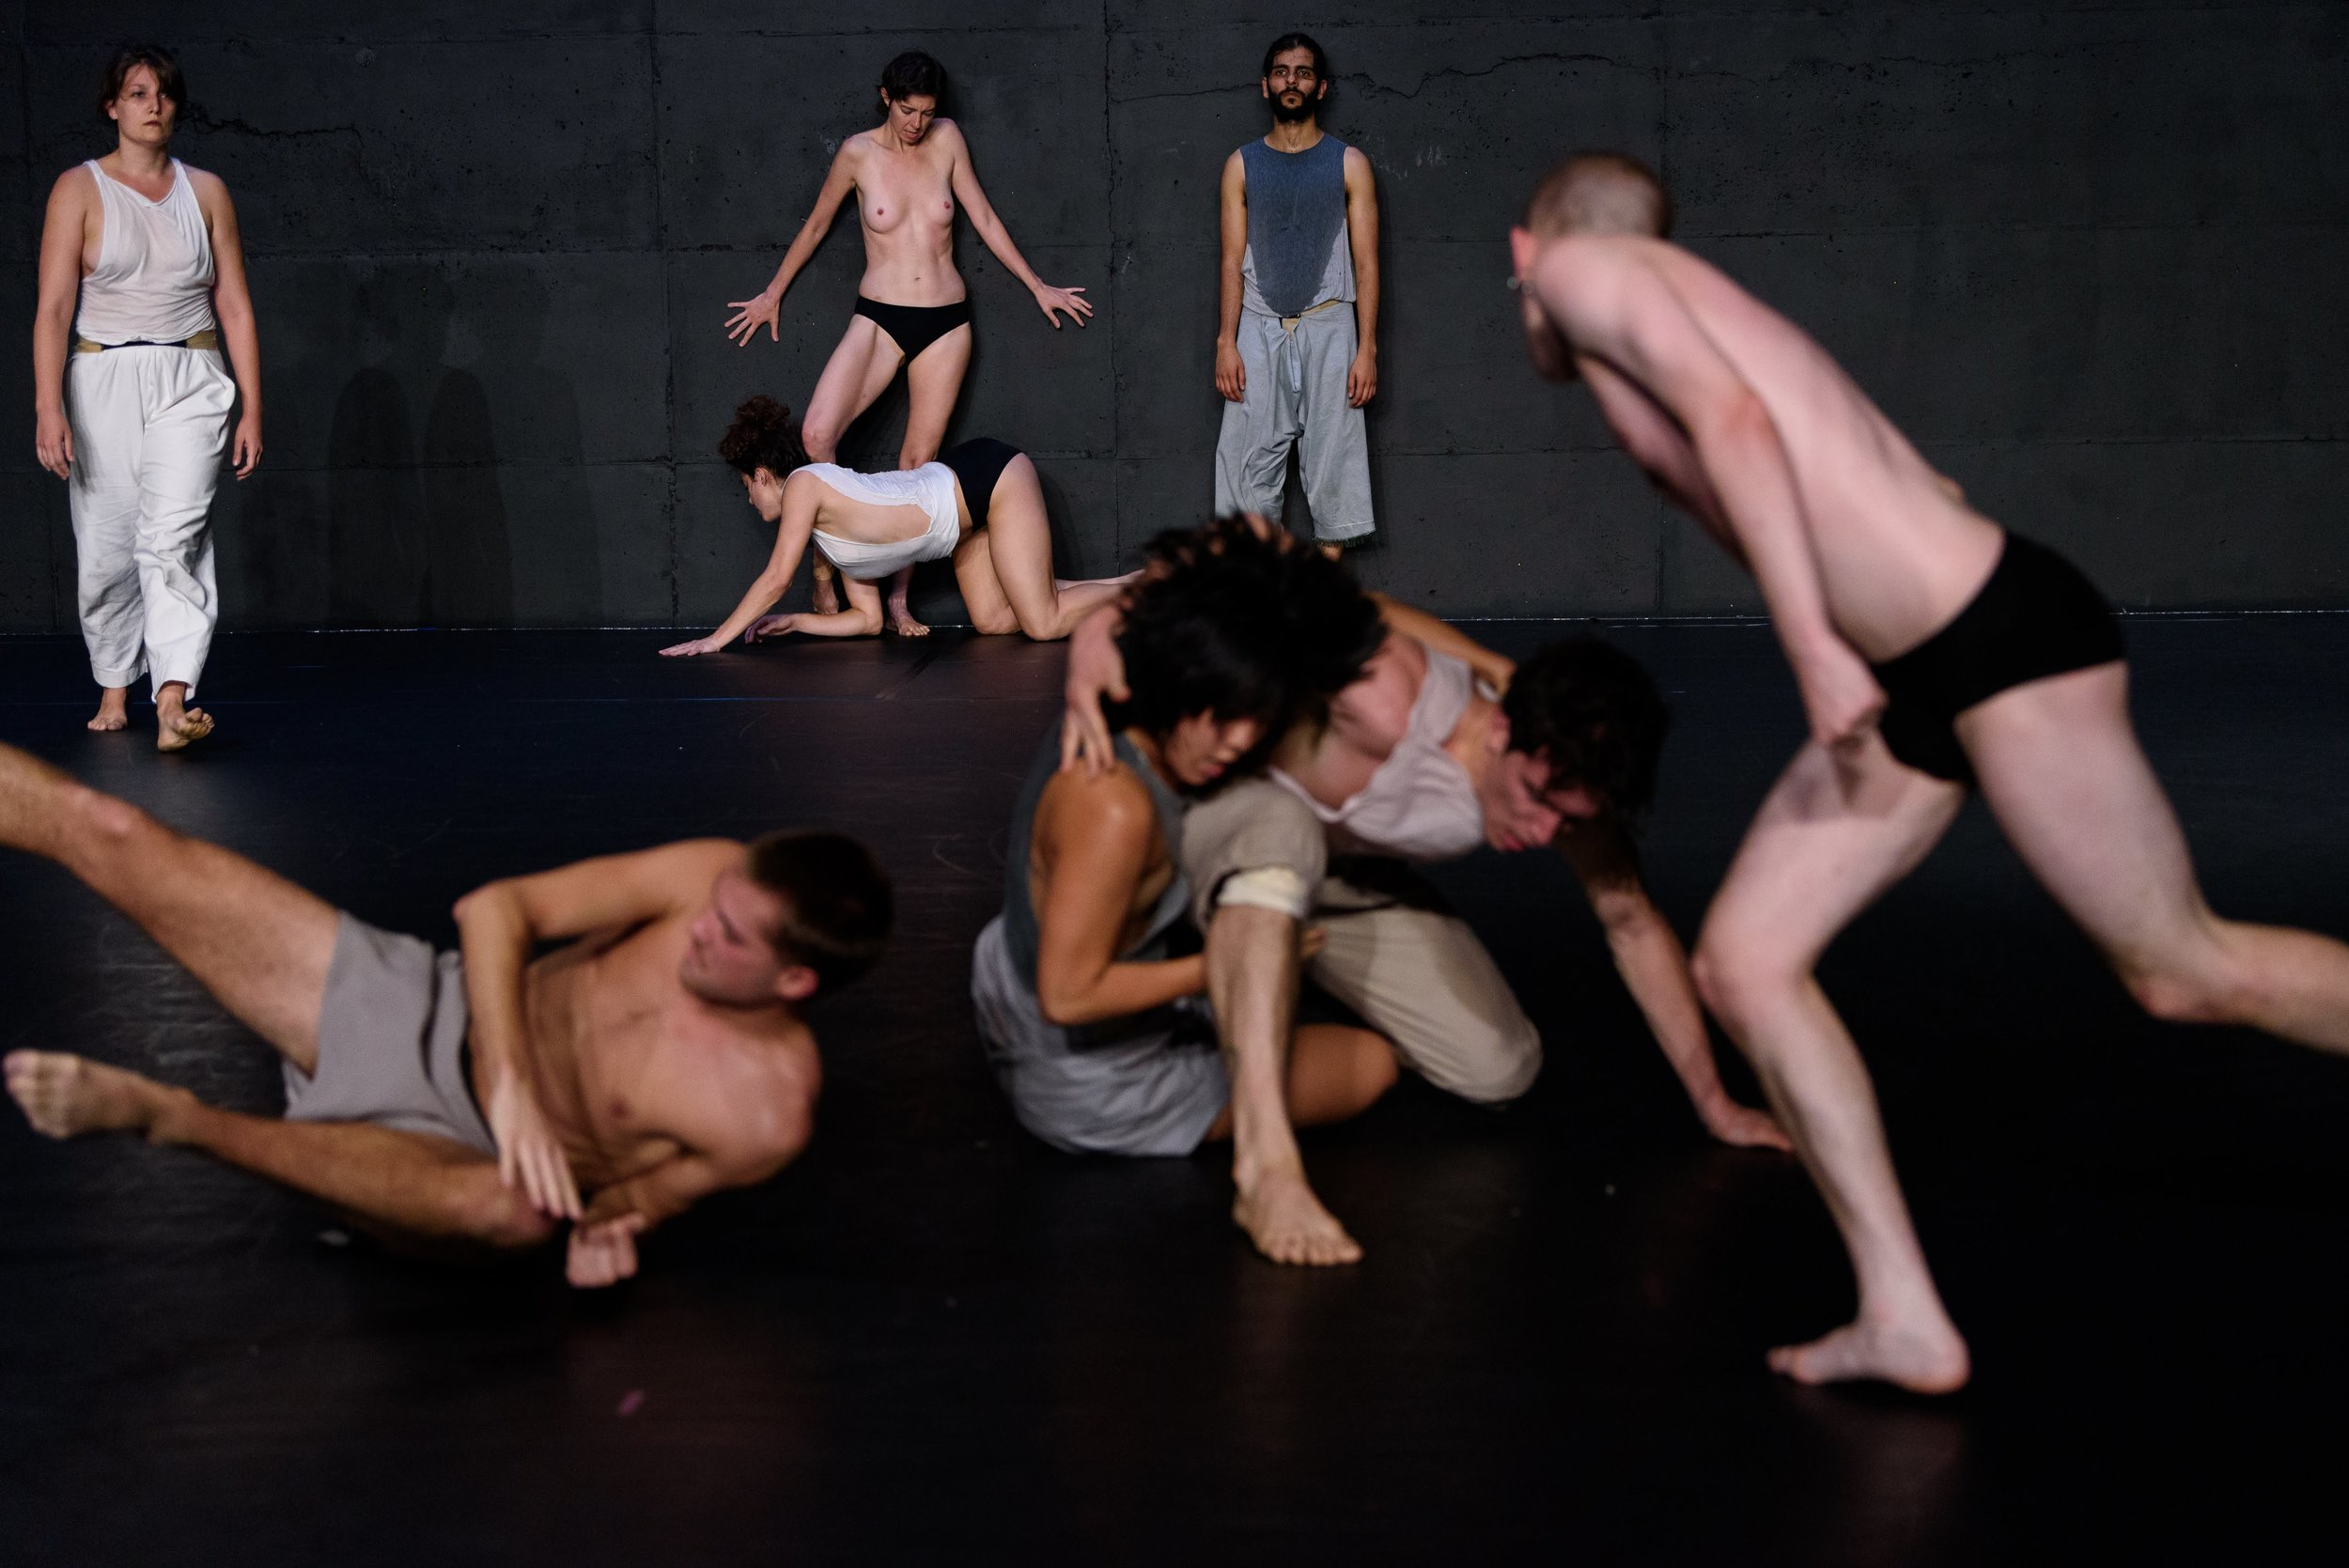 """""""Y"""" -    2018, New York Live Arts; Conceived & Directed by RoseAnne Spradlin; Movement Scores created in collaboration w/ the Dancers; Sound by Glen Fogel & Ben Manley; Lighting by Roderick Murray; Front L-R: Doug LeCours, Annie Heath, Thomas Welsh-Huggins, Connor Voss - back L-R: EmmaGrace Skove-Epes, Claire Westby, Athena Malloy & Ainesh Madan. Photo: Ryutaro Mishima"""